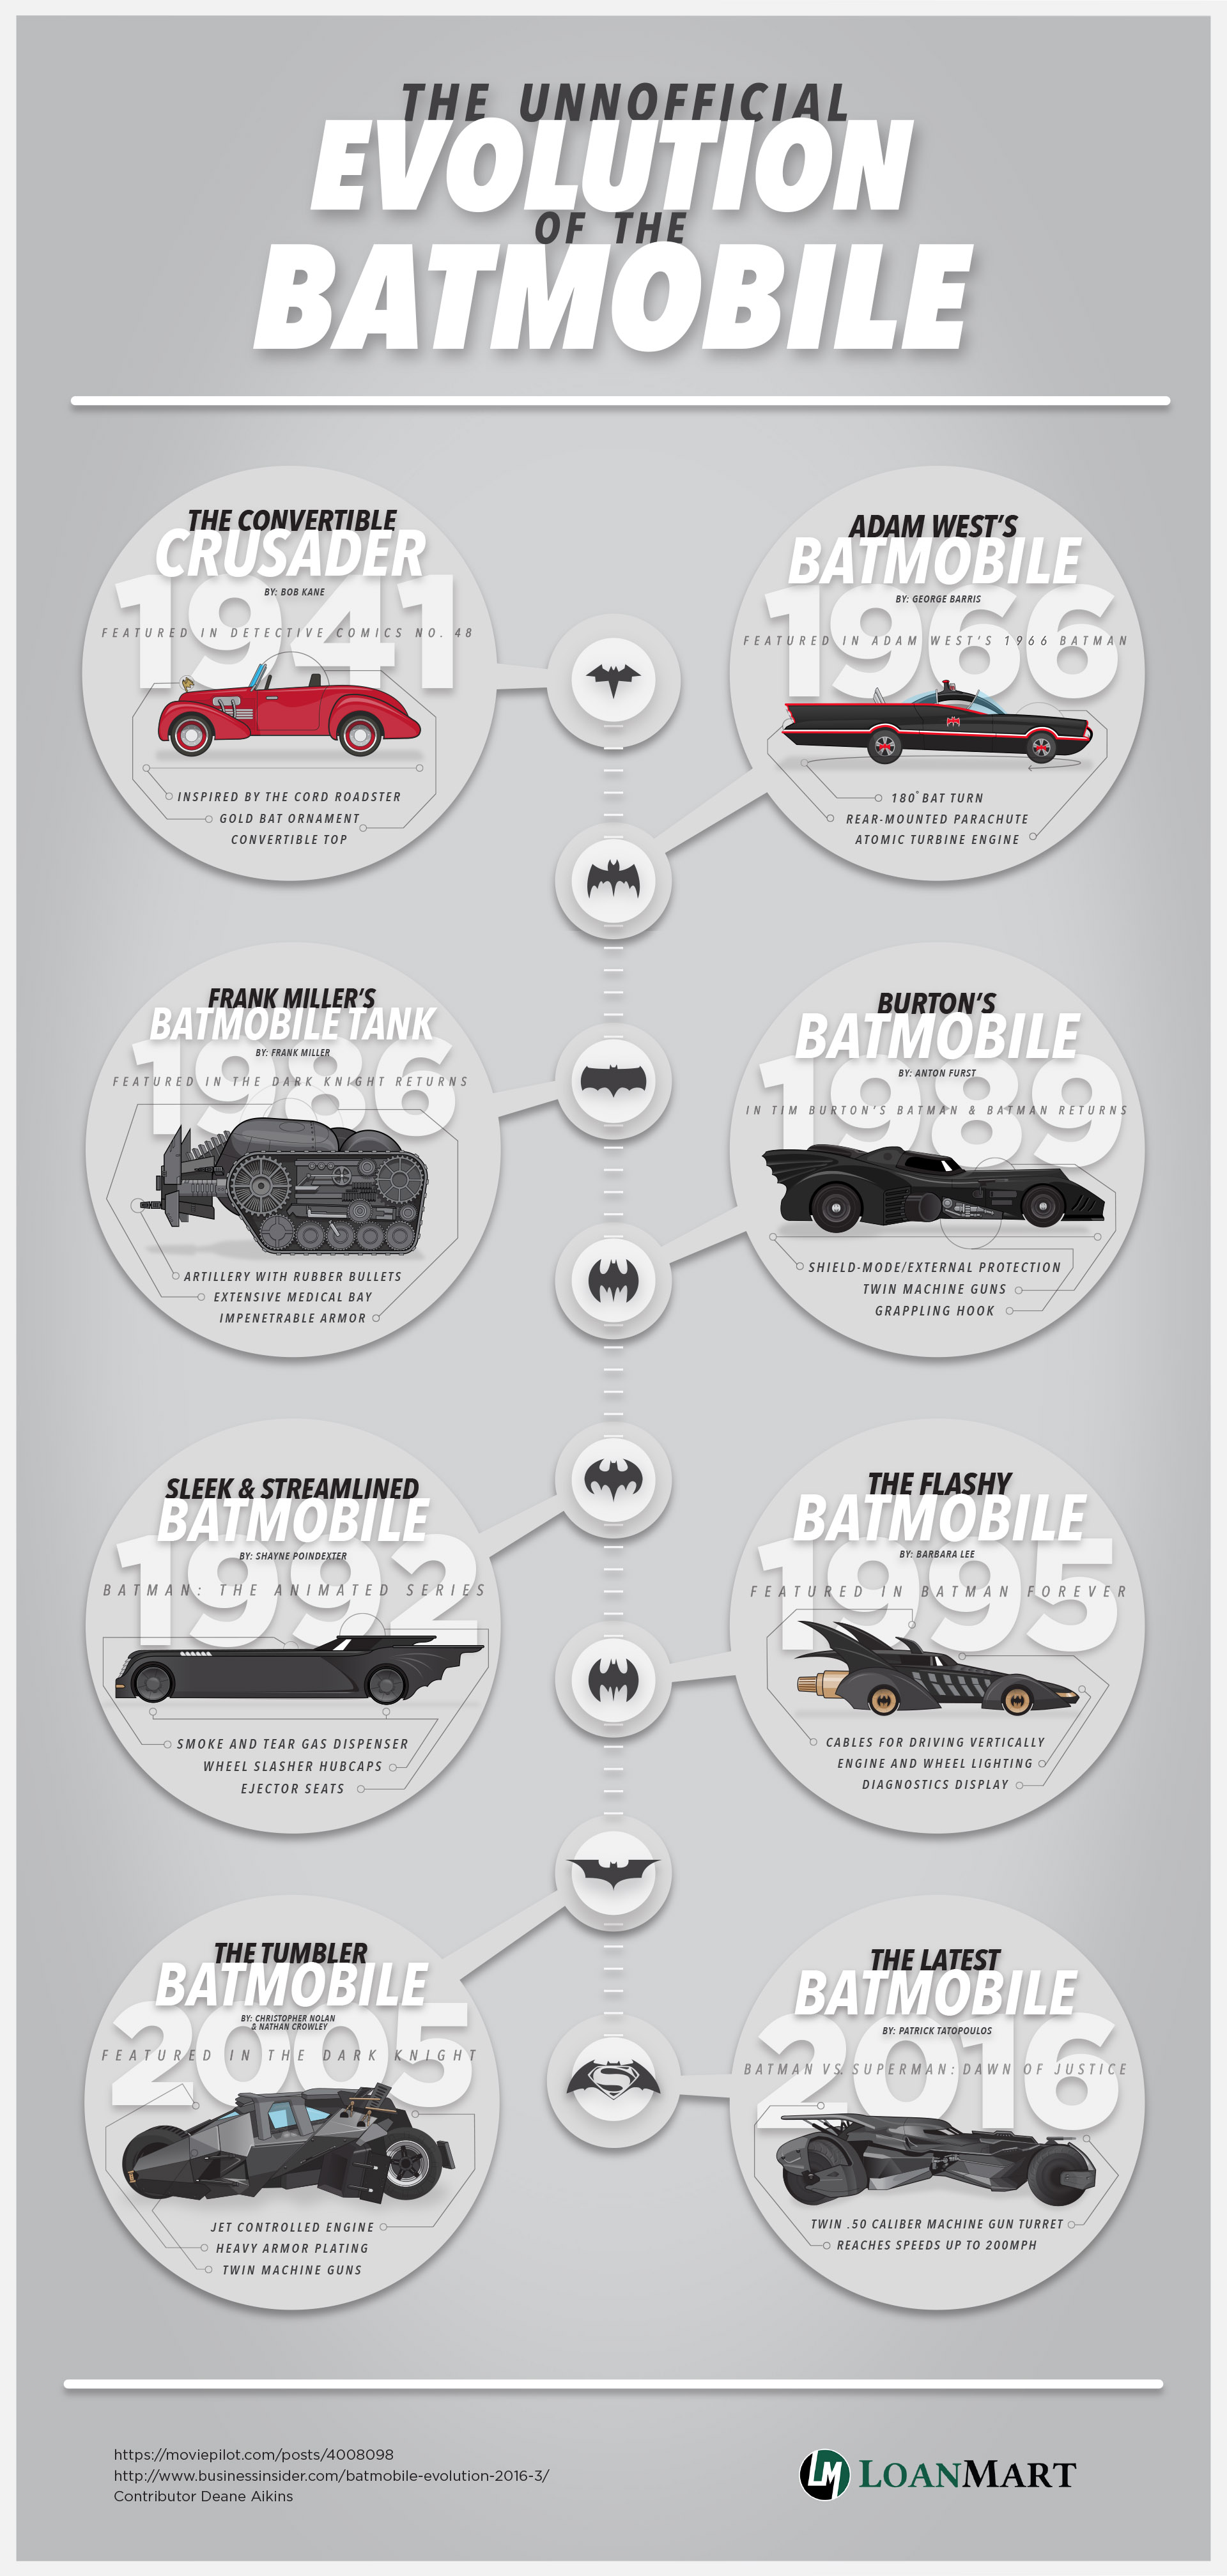 The Unofficial Evolution of the Batmobile